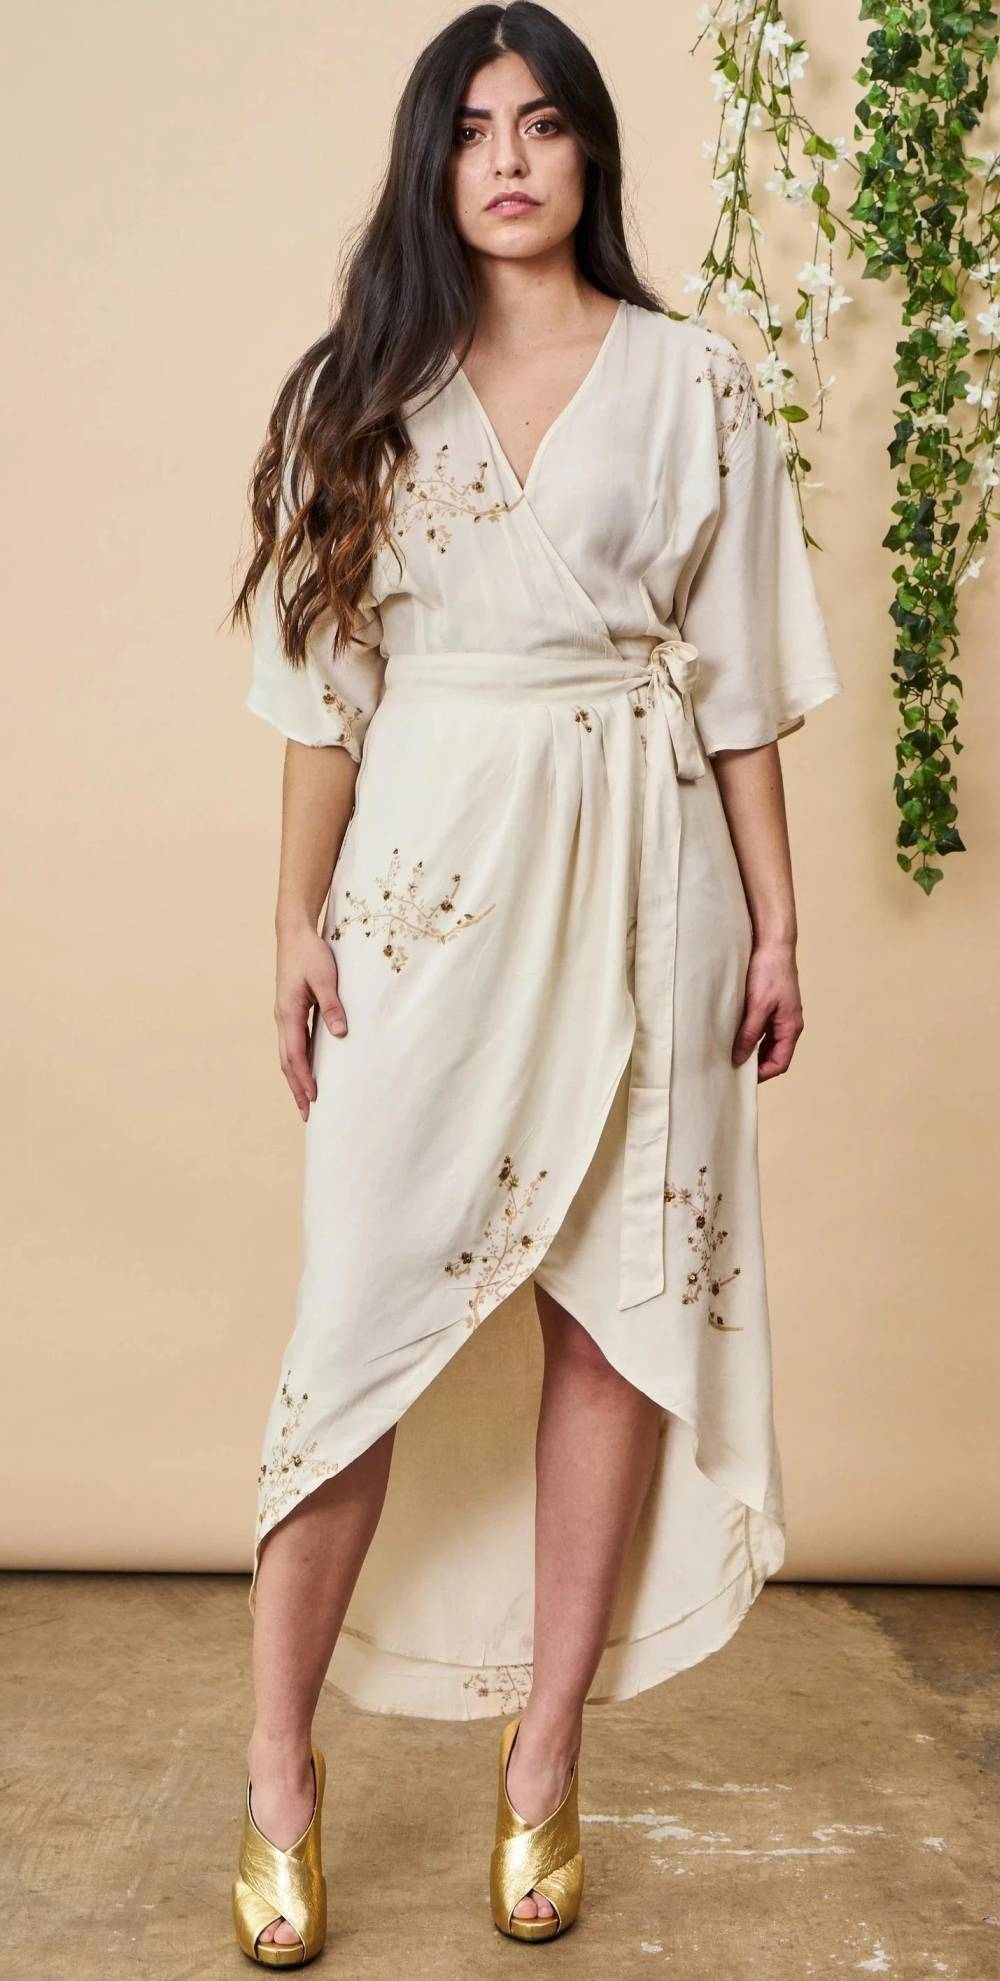 special occasion stylish party outfit